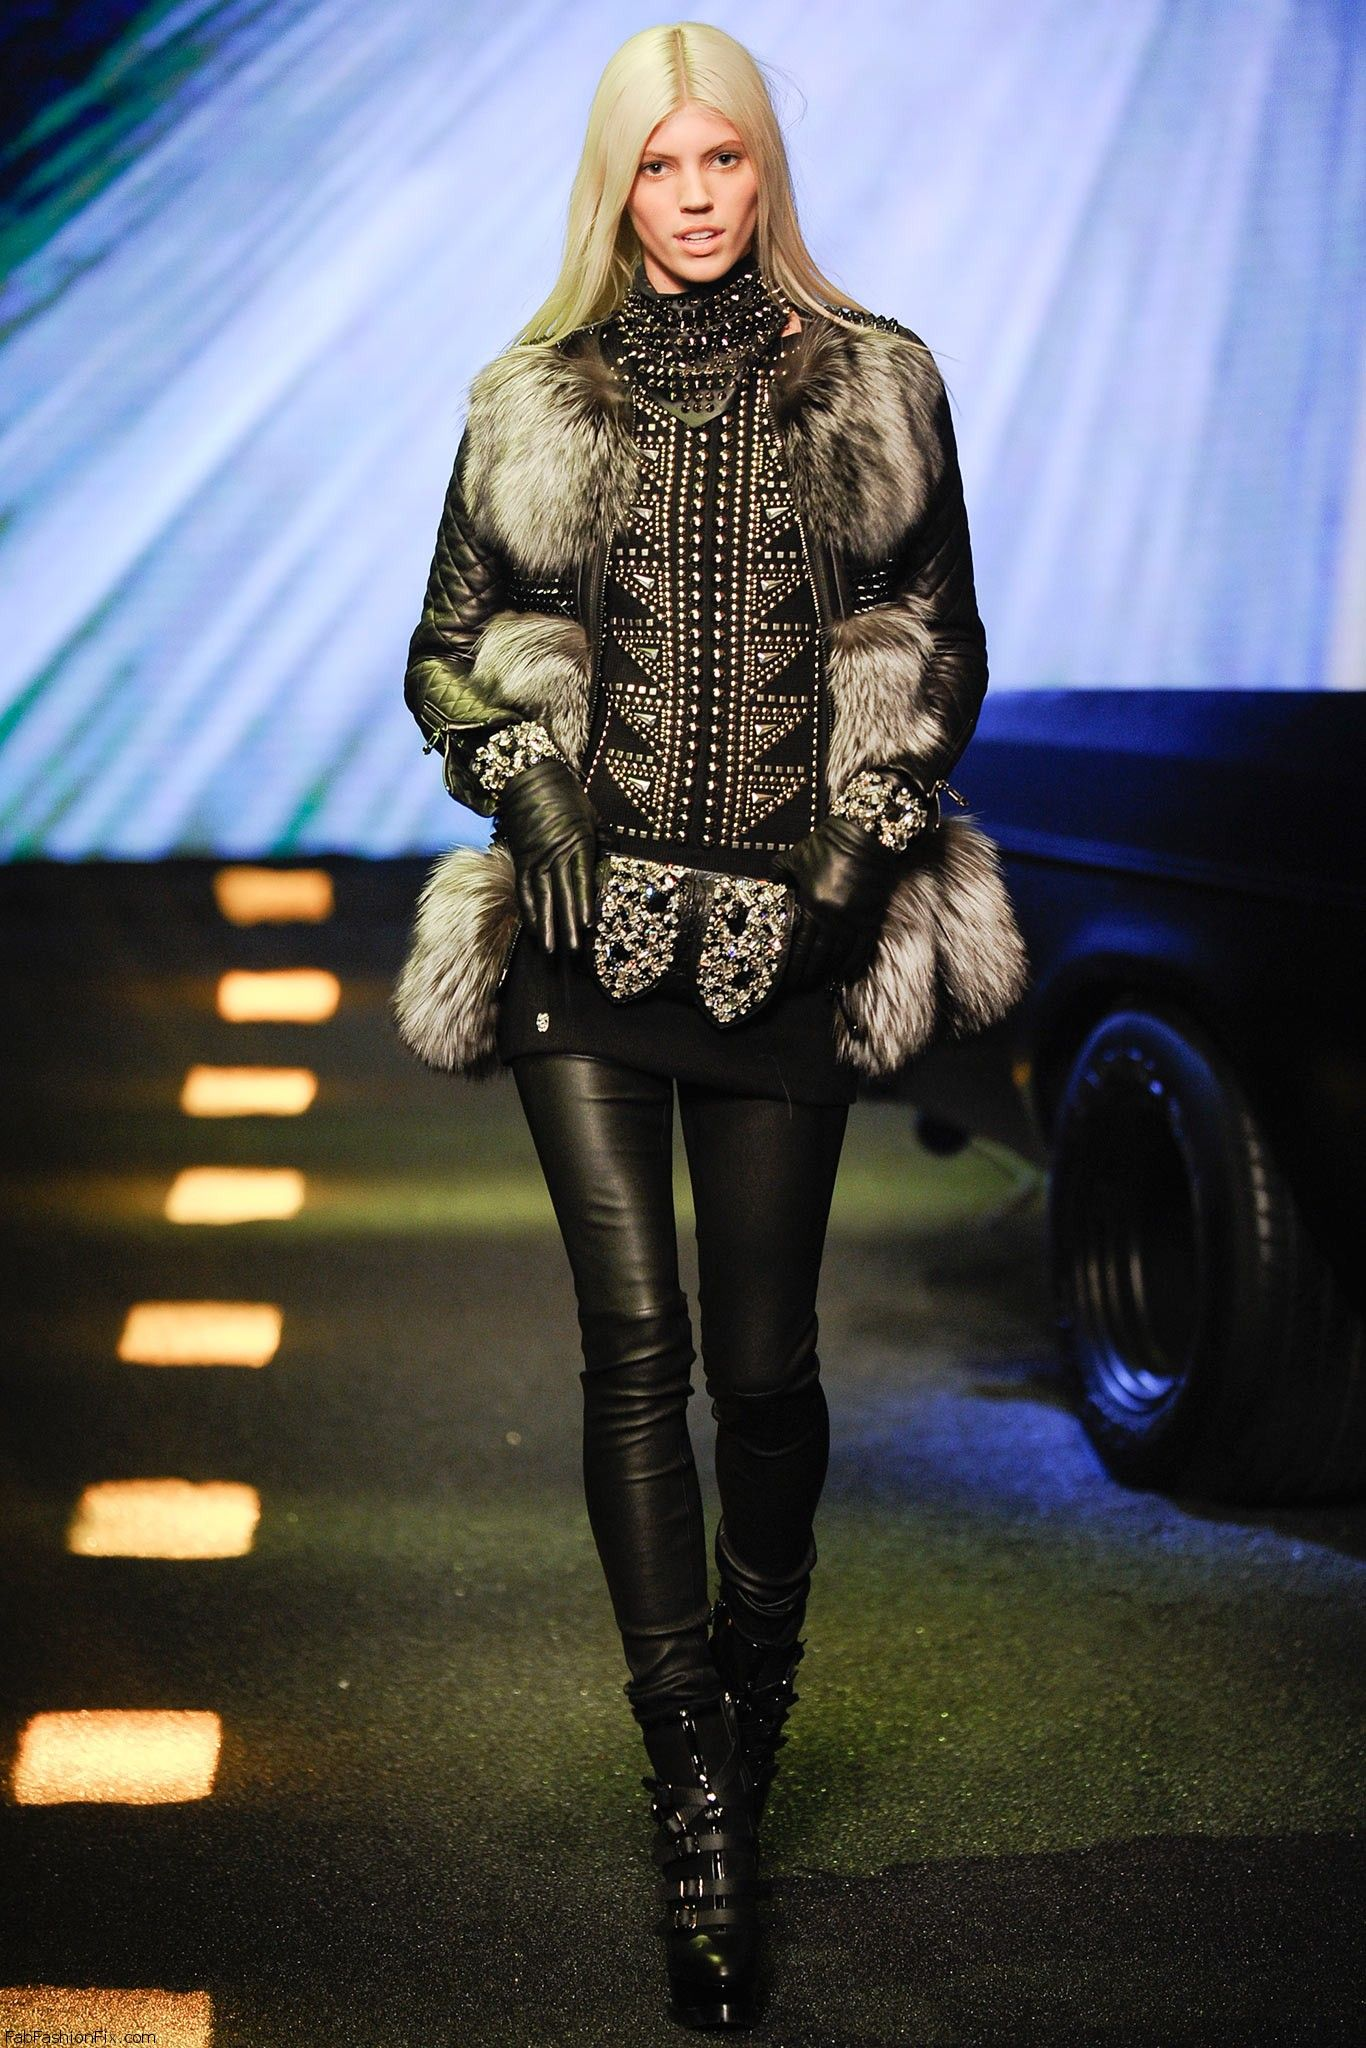 Philipp Plein fall/winter 2014 collection